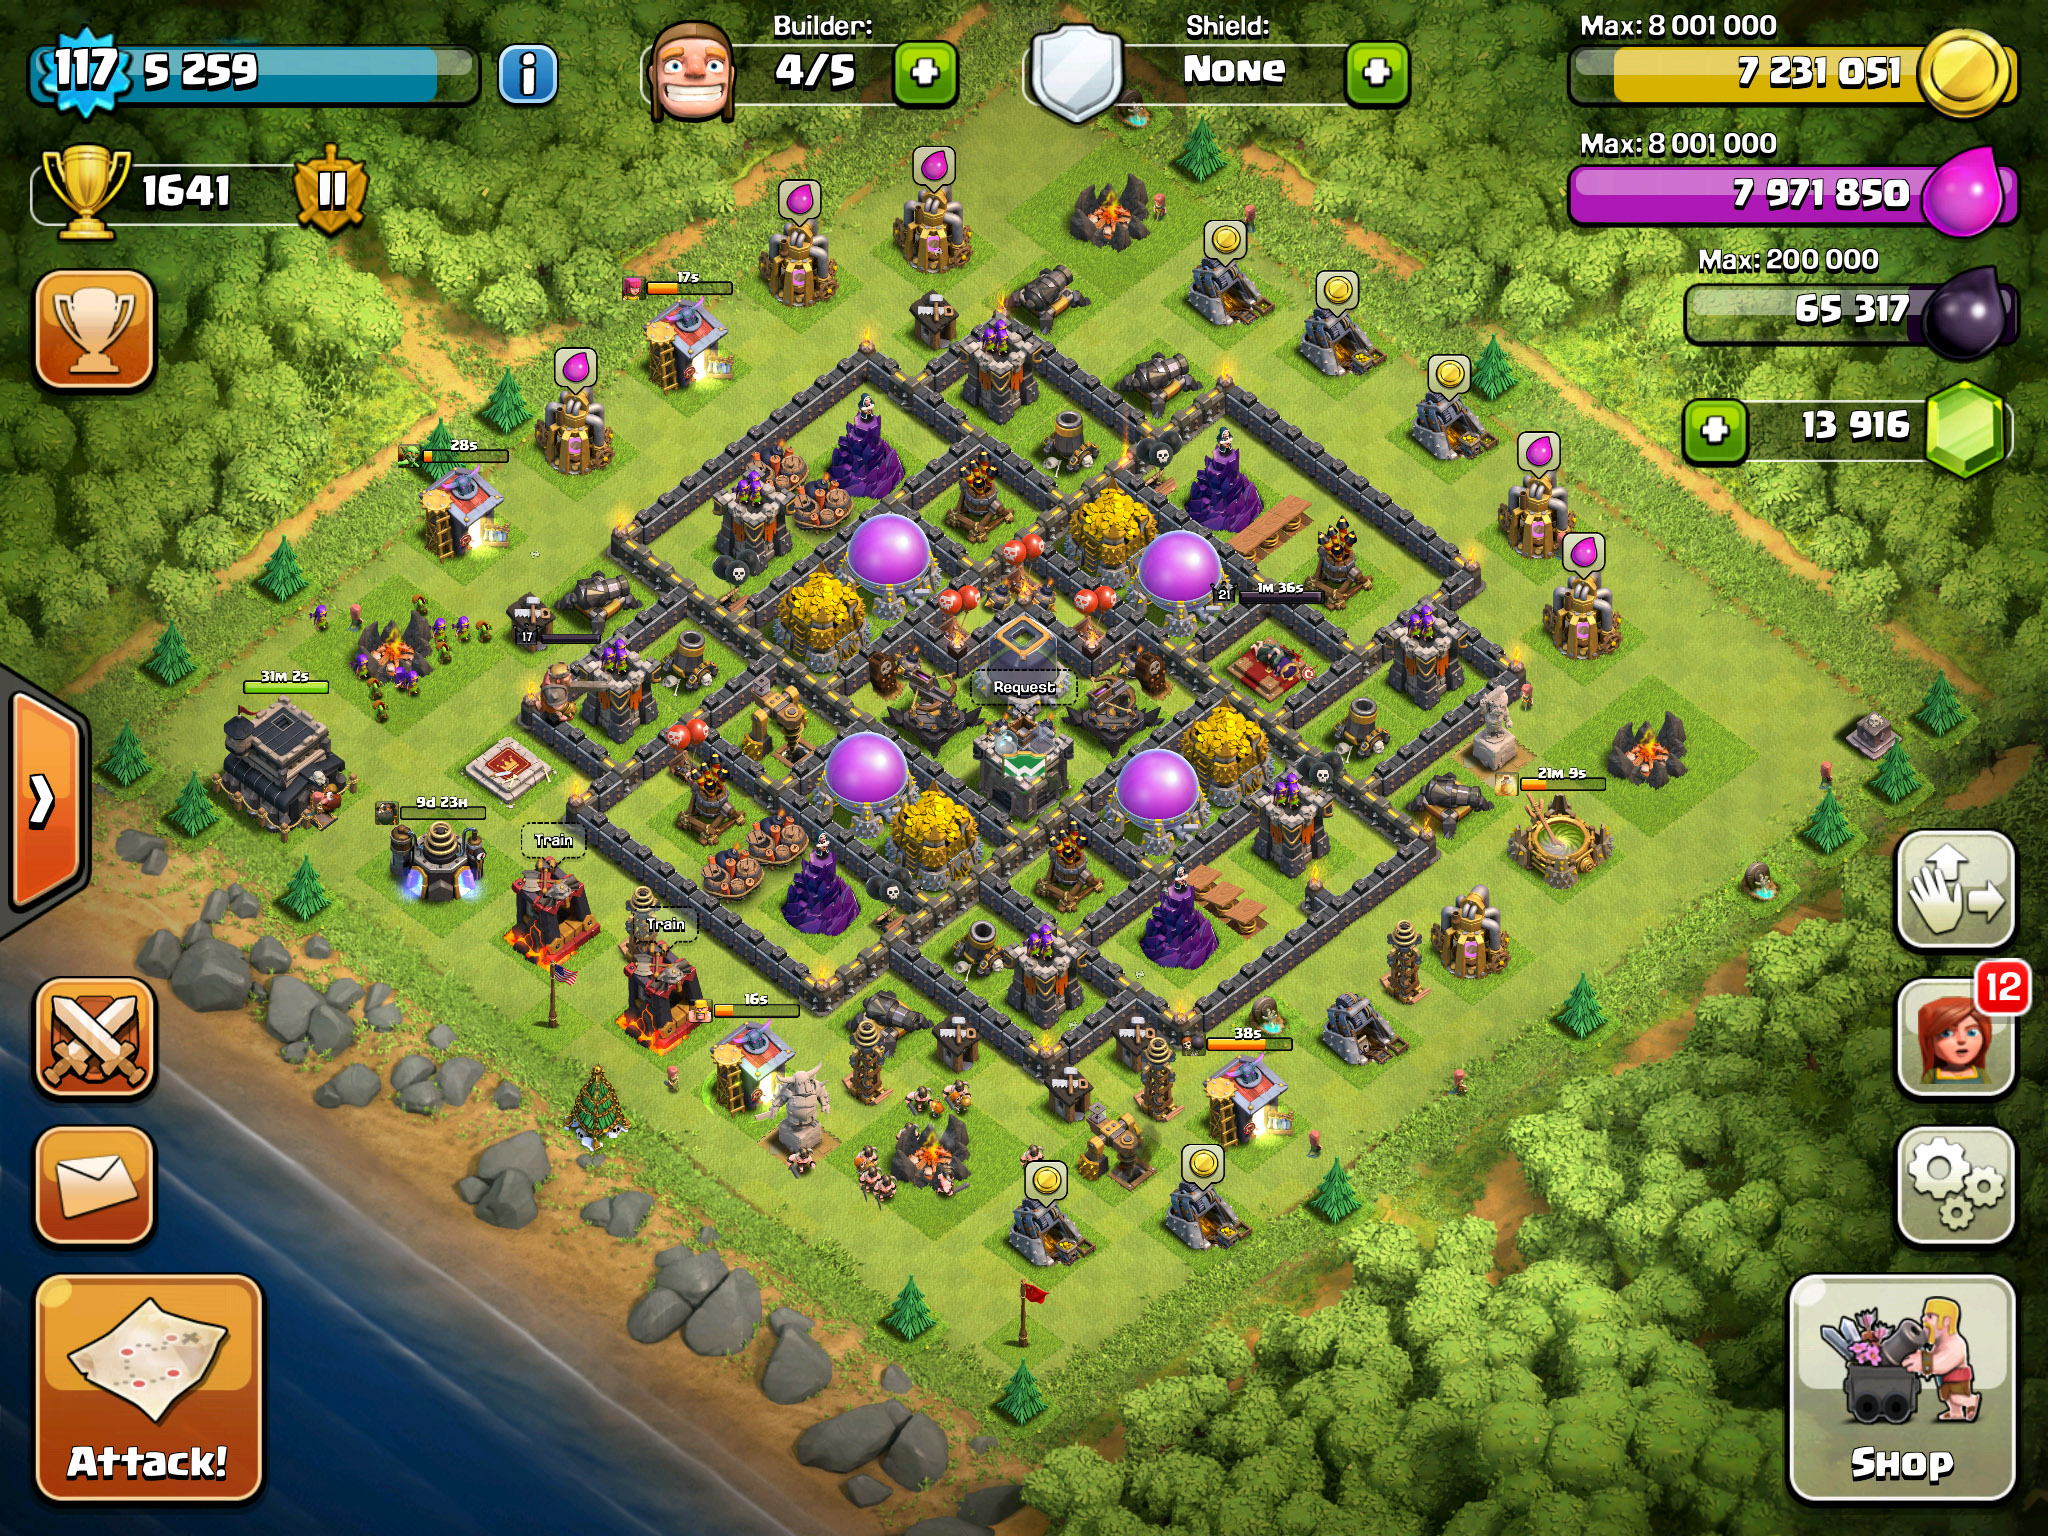 LVL9 TH Base